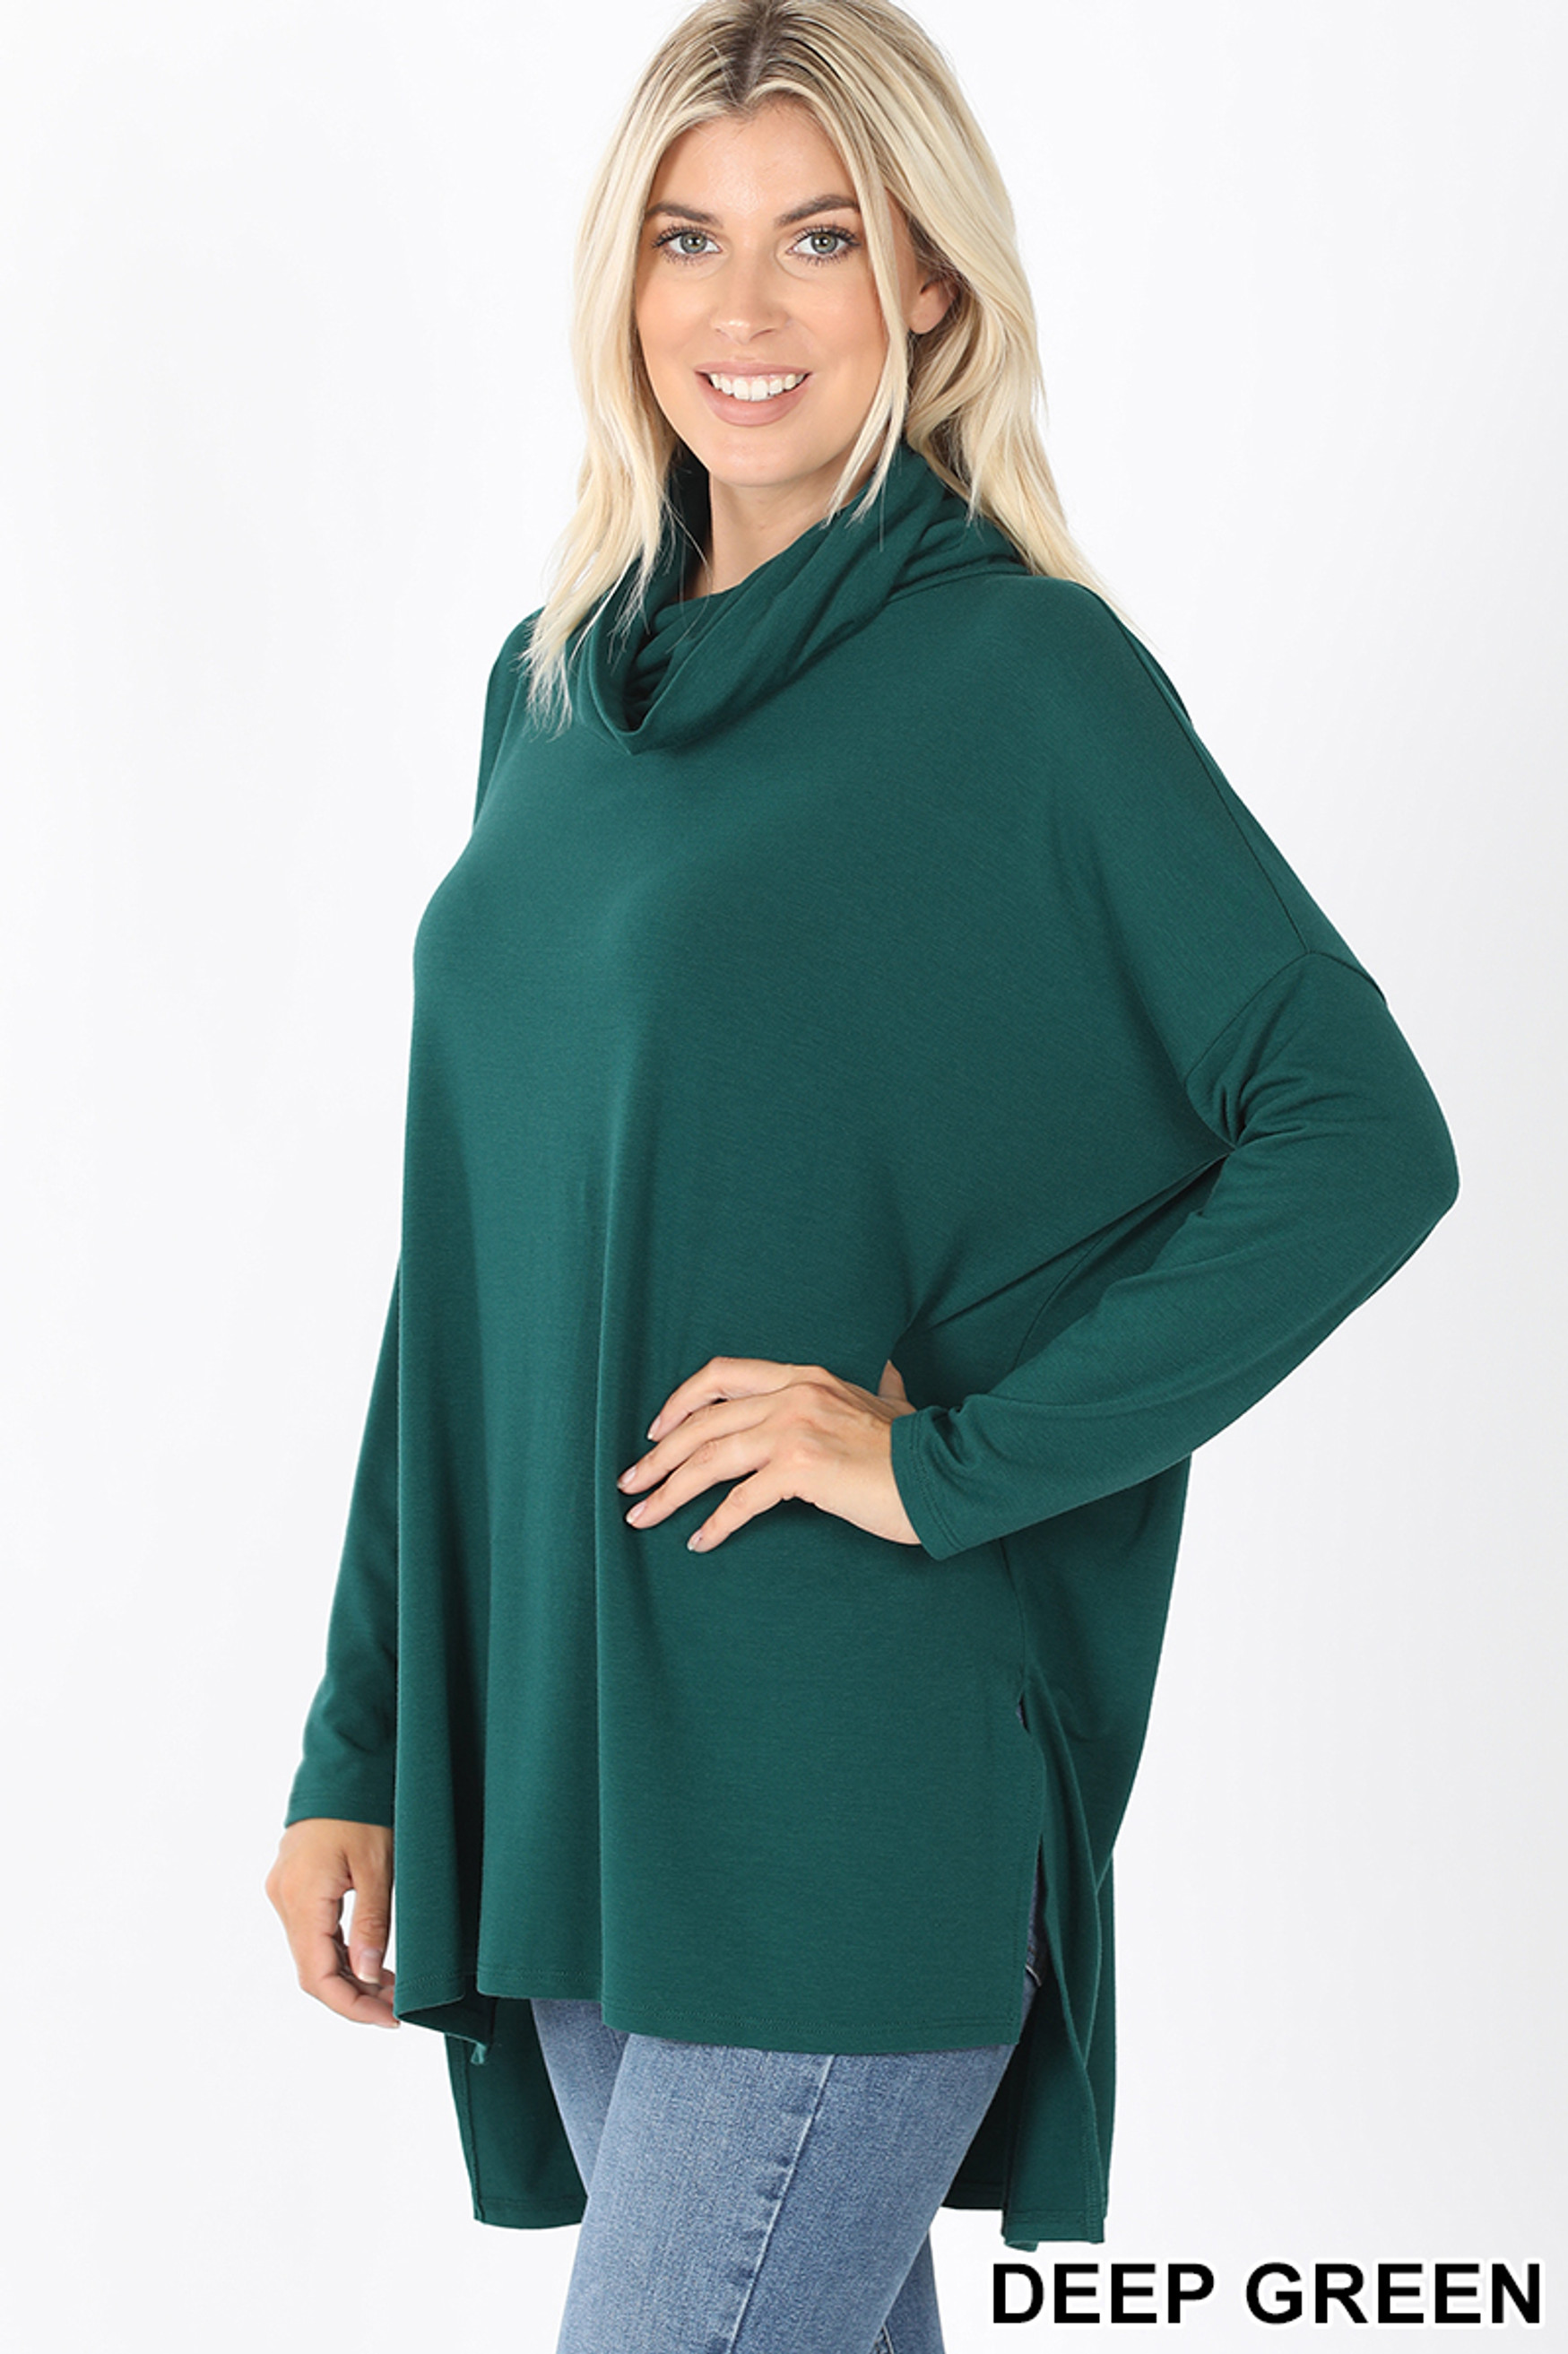 45 Degree Front image of Deep Green Cowl Neck Hi-Low Long Sleeve Plus Size Top